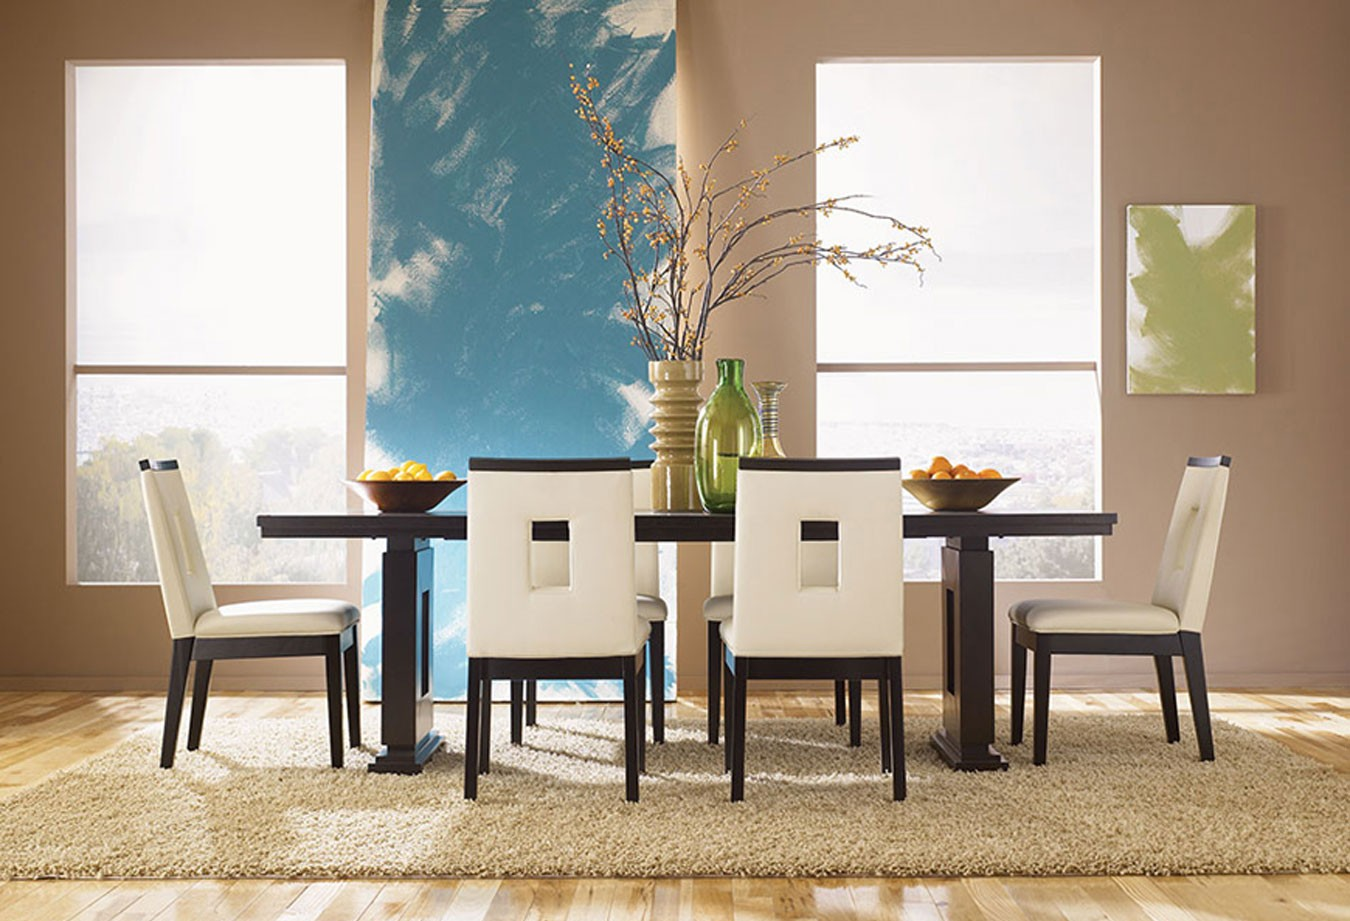 dining room trends for 2016 dining room trends for 2016 Top 10 dining room trends for 2016 Relaxing Dining Room Furniture Paint Colors Ideas With Natural Expanding Dining Table Design And White Wood Chair Padded Seat Design Also Charming Feather Carpet Ideas Plus Bowl Of Fruit Ideas e1459360411131